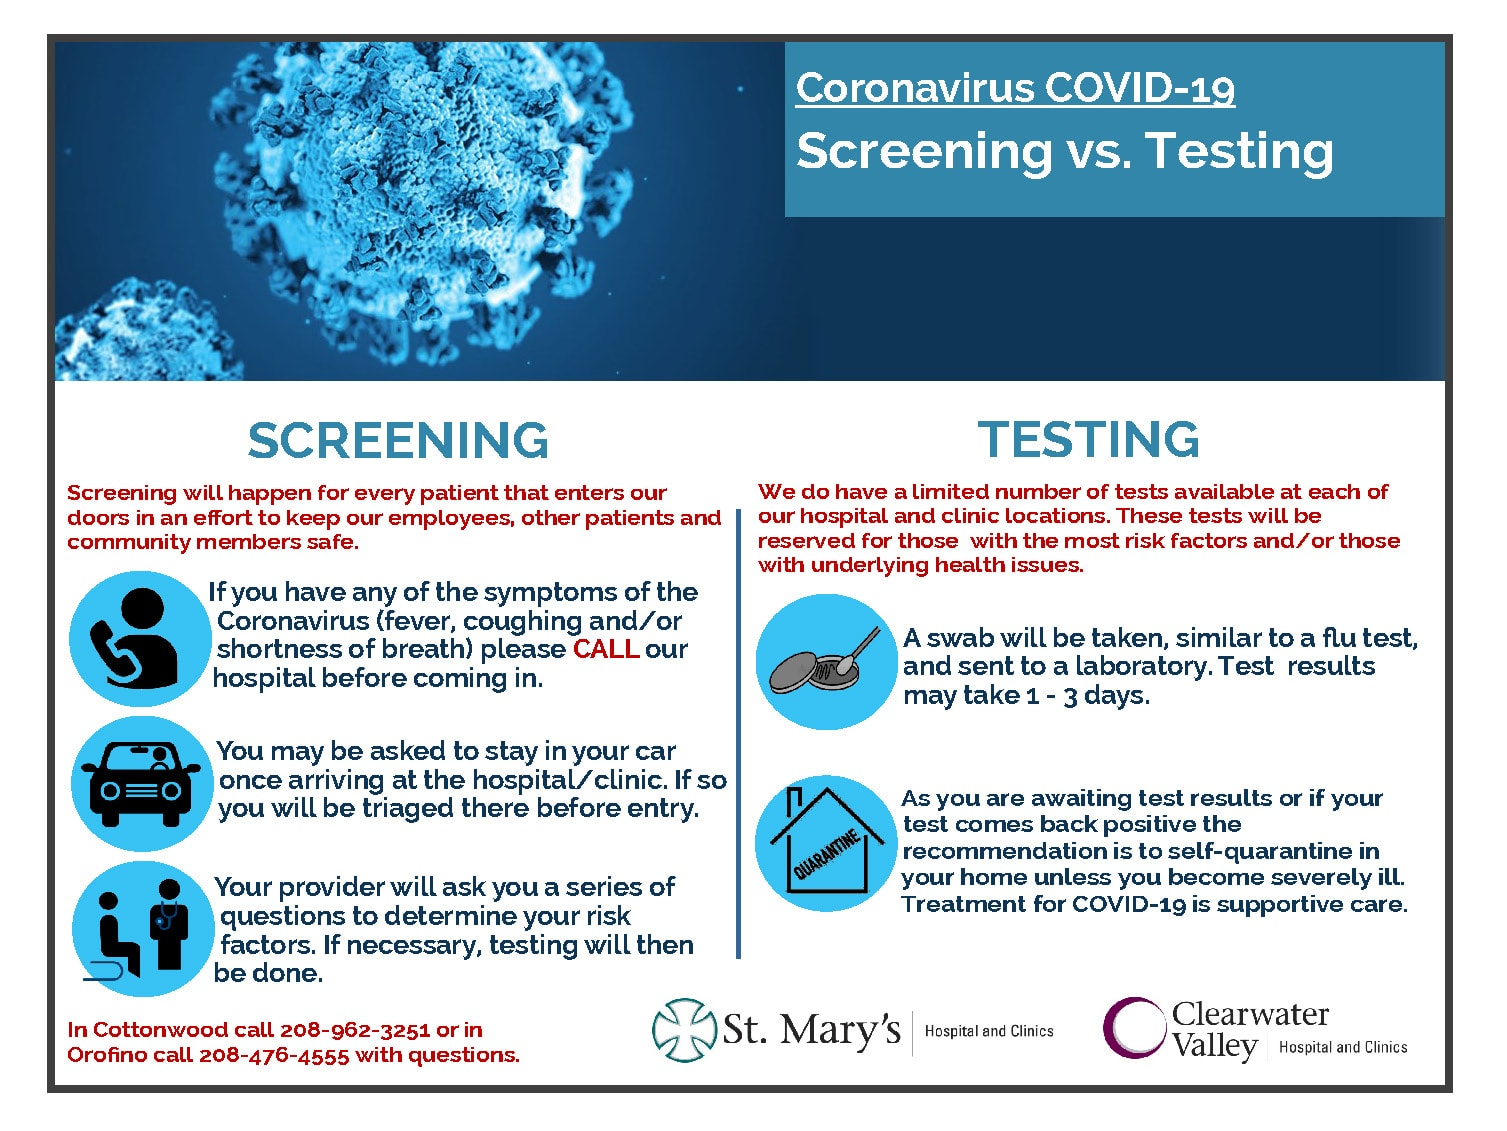 Testing Vs. Screening